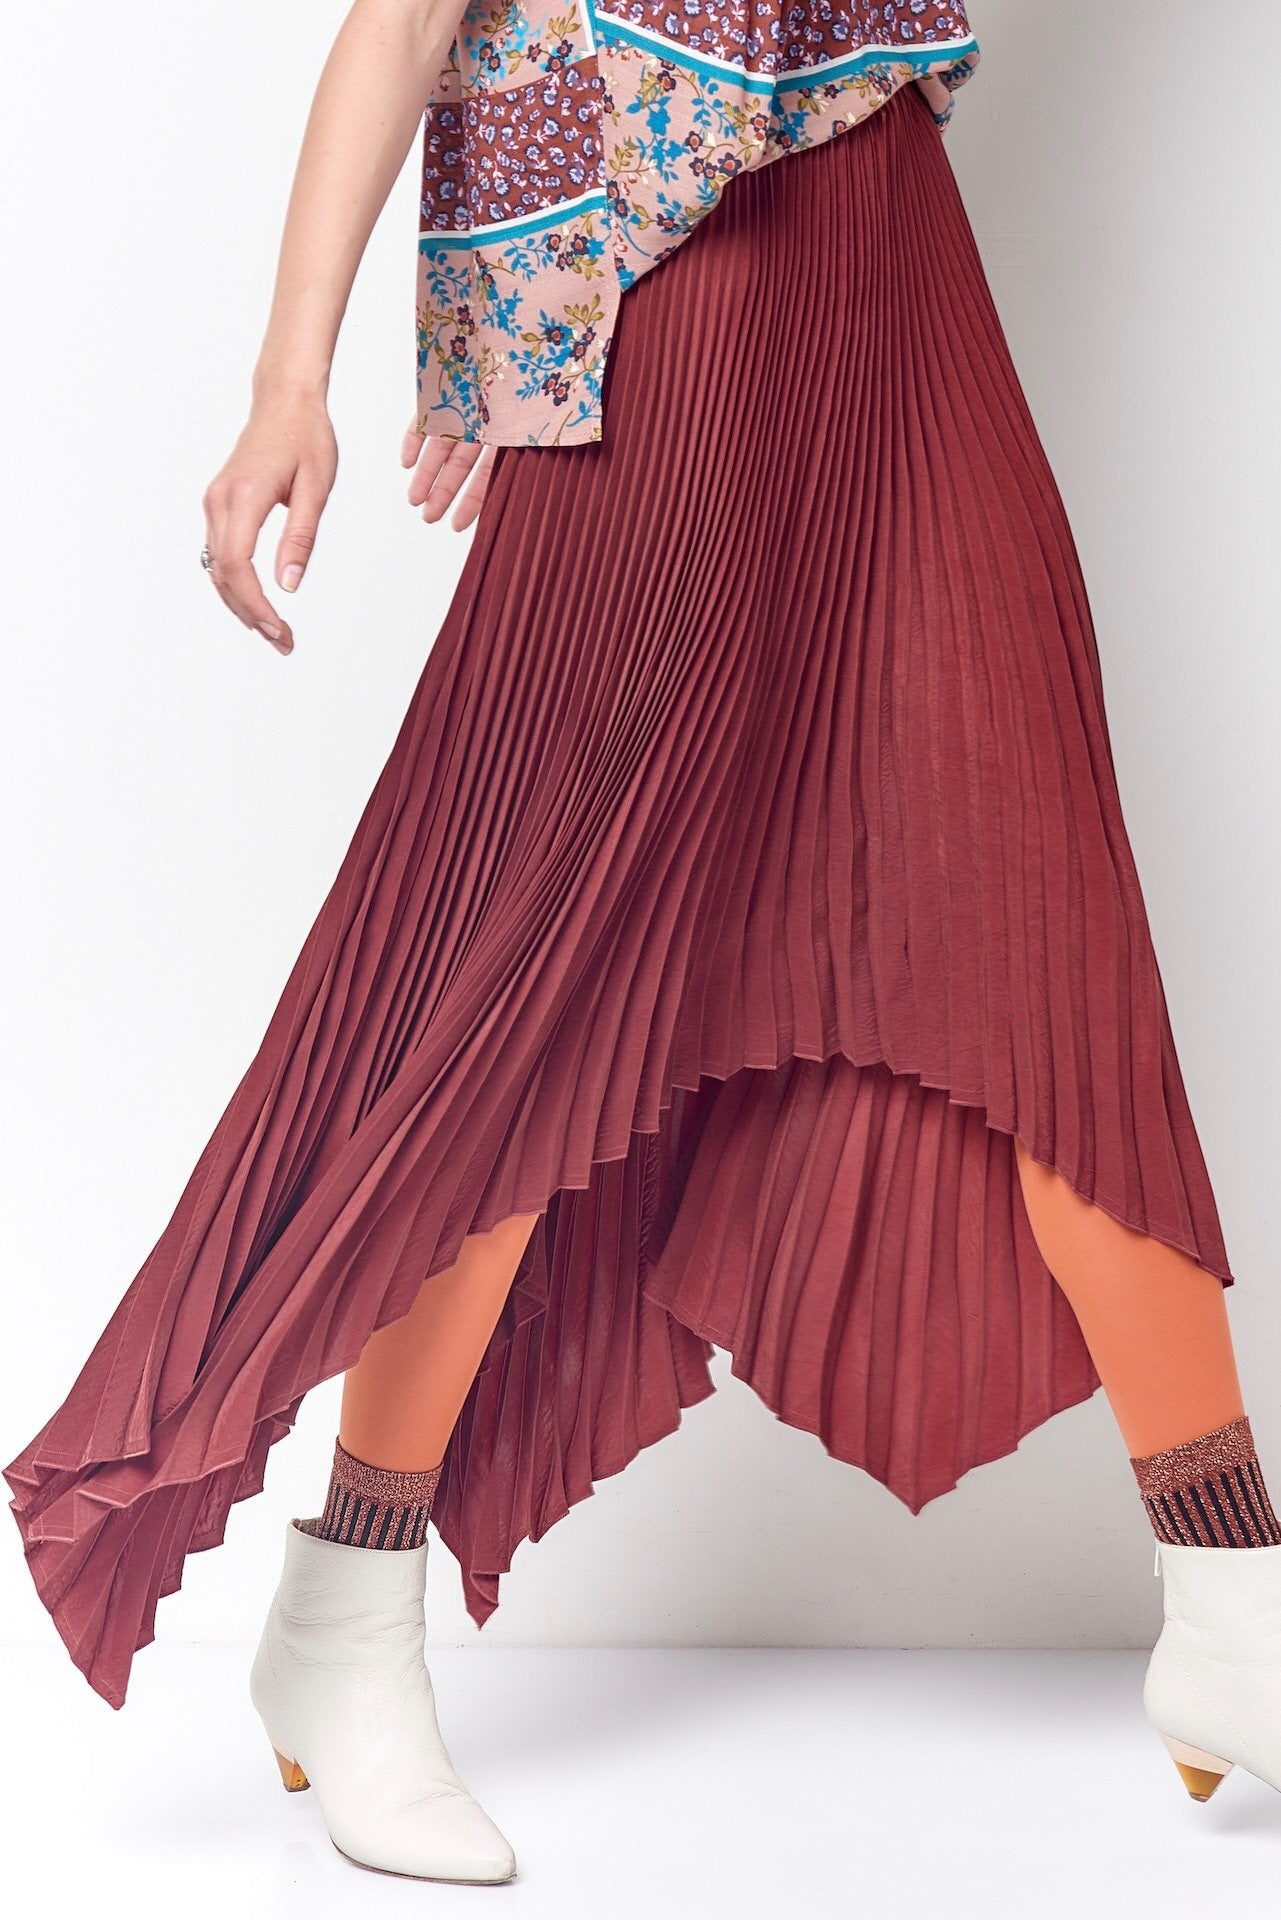 TRICIA Pleated 4 Corner Skirt